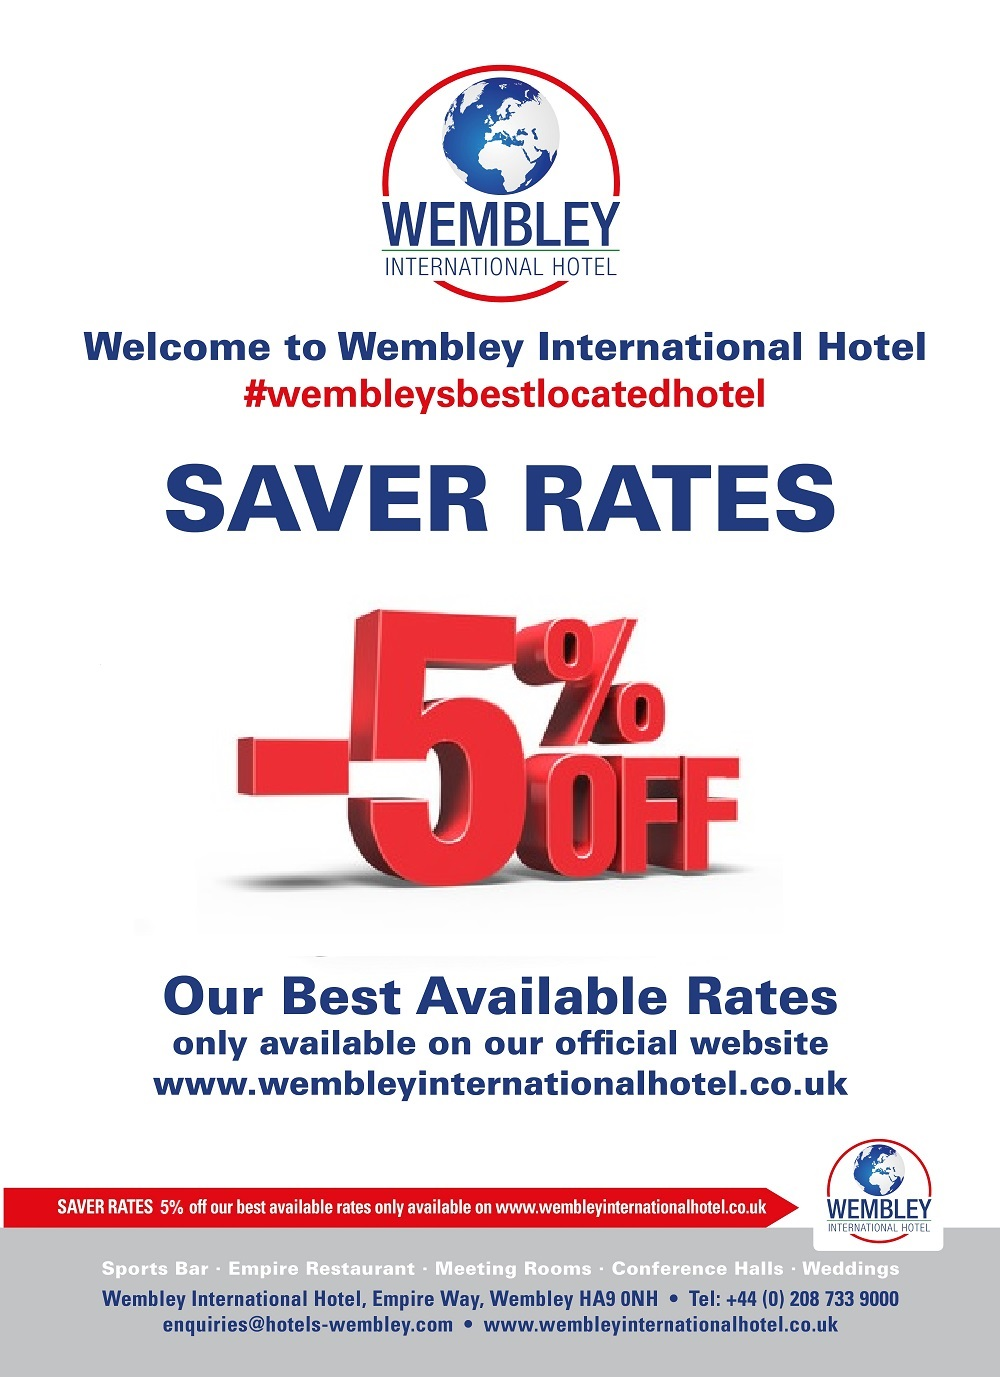 Saver Rates 5% discount Wembley International Hotel